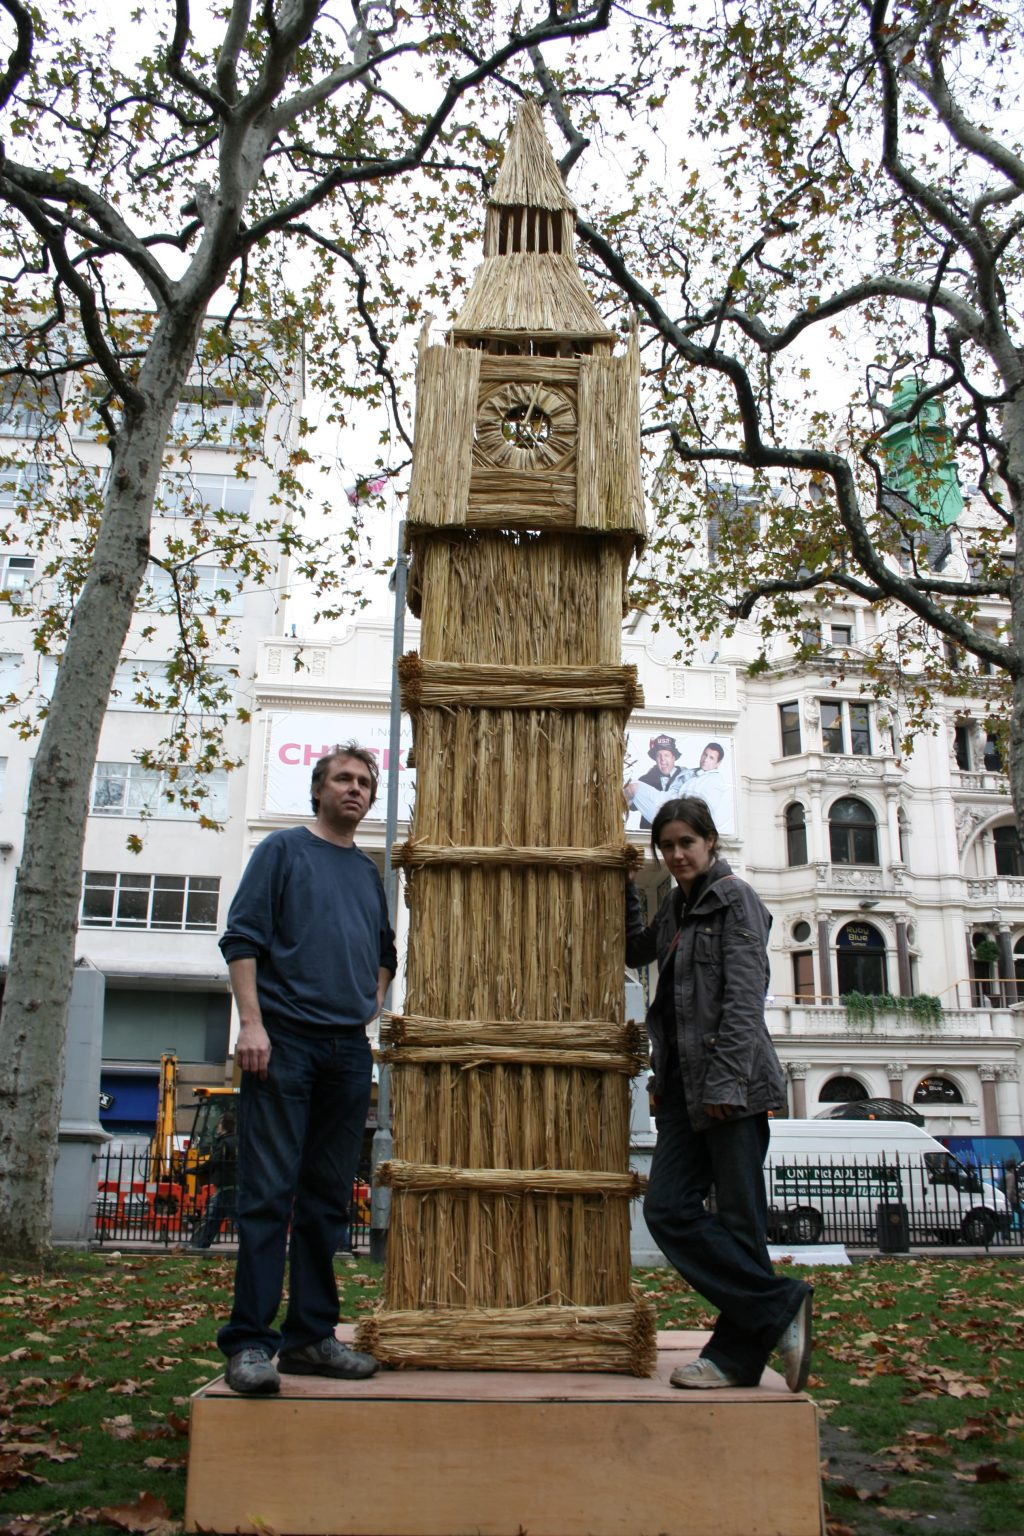 Artist with Big Ben made of wheat